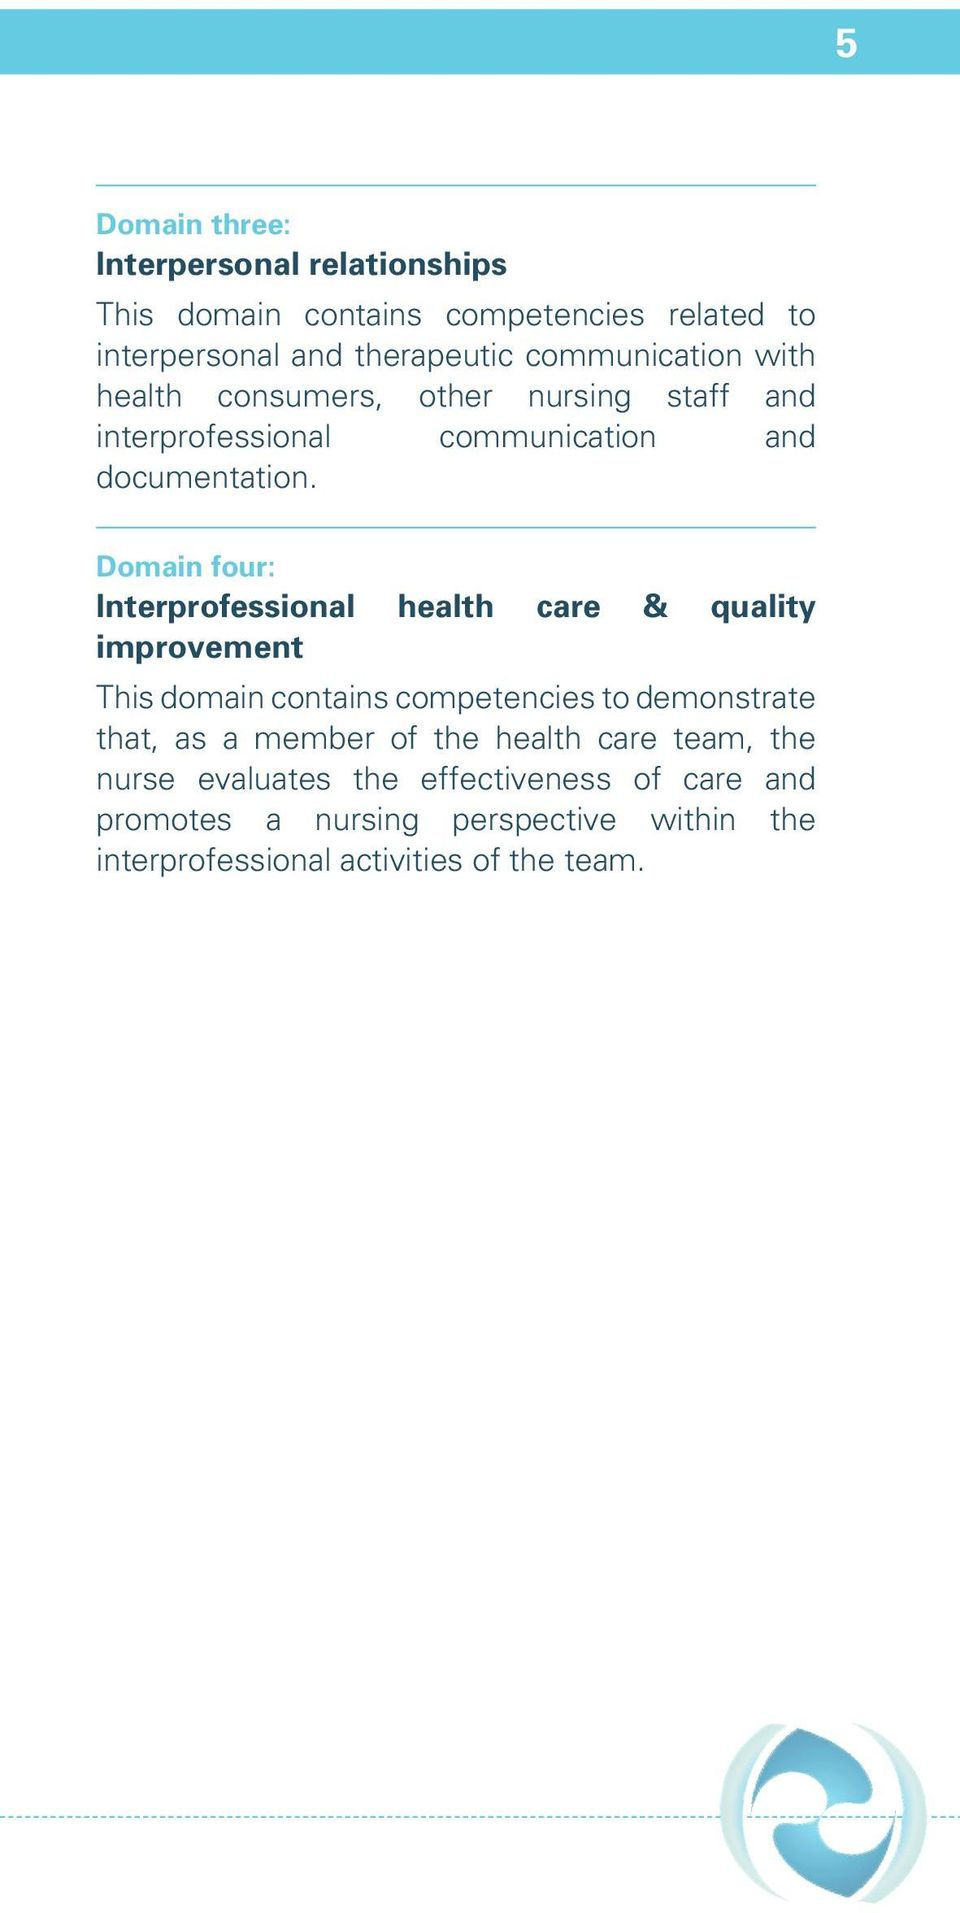 Domain four: Interprofessional health care & quality improvement This domain contains competencies to demonstrate that, as a